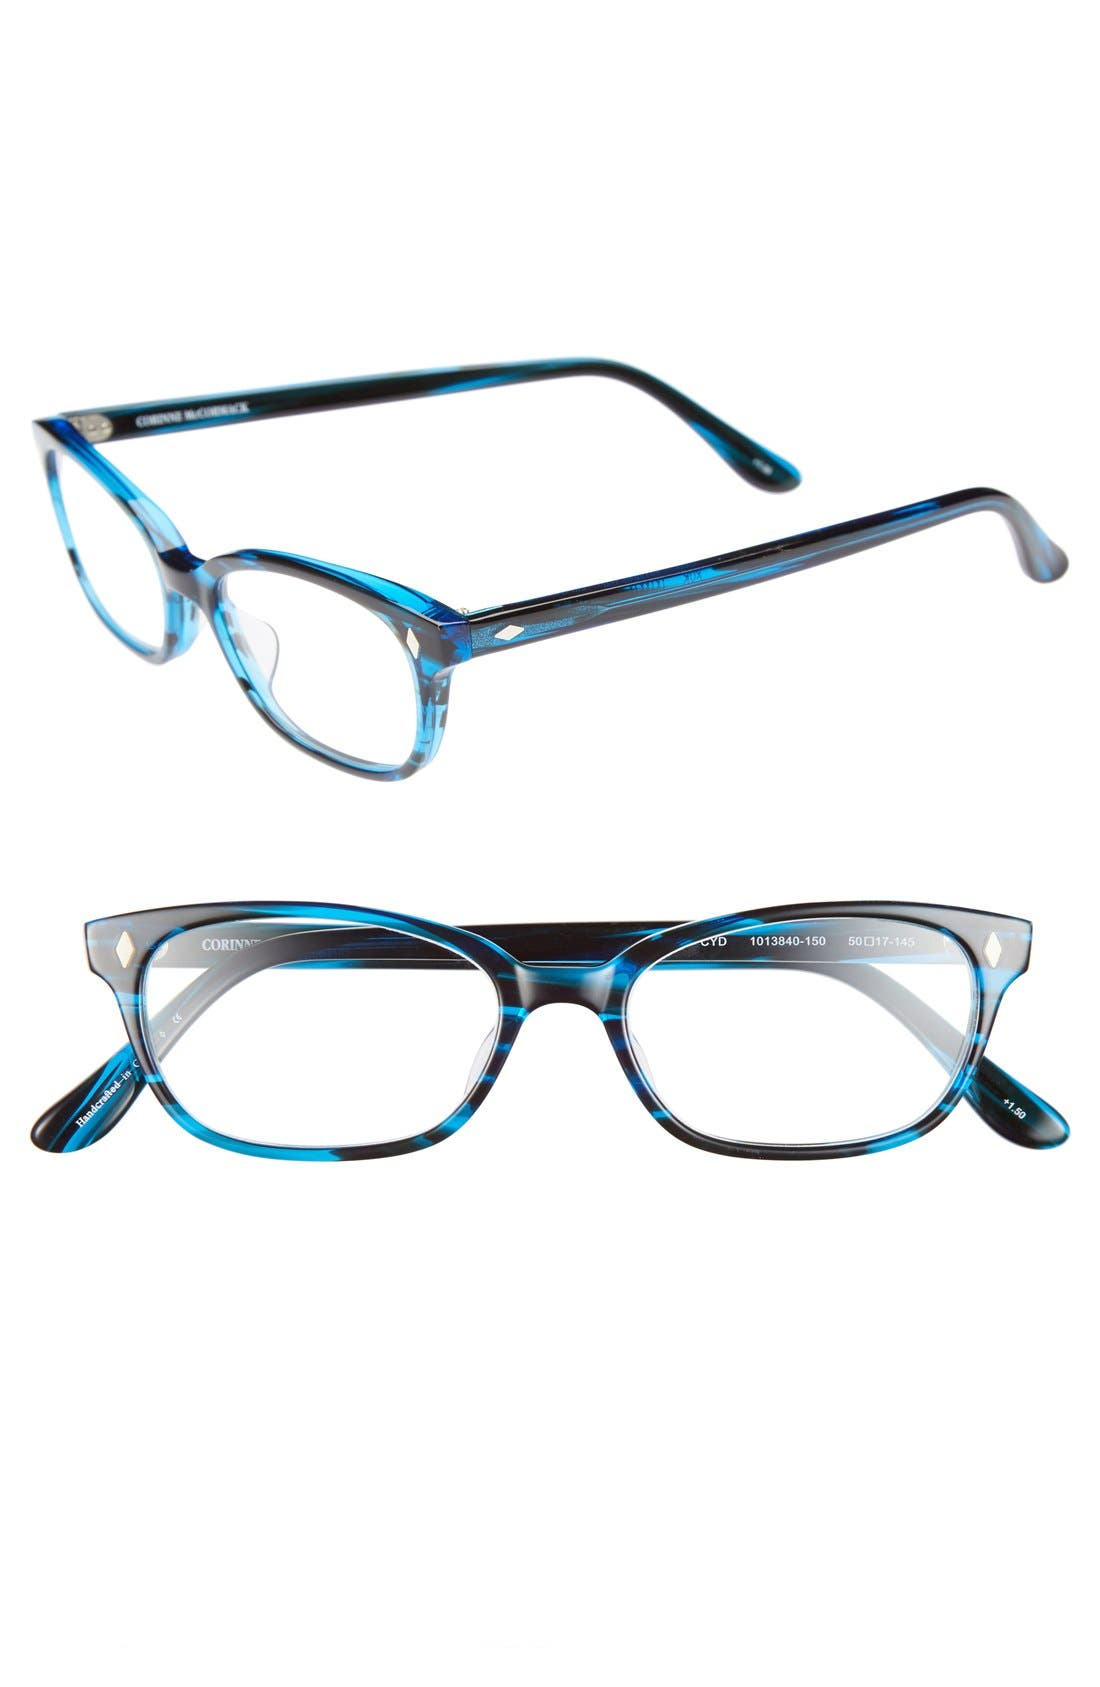 Main Image - Corinne McCormack 'Cyd' 50mm Reading Glasses (2 for $88)